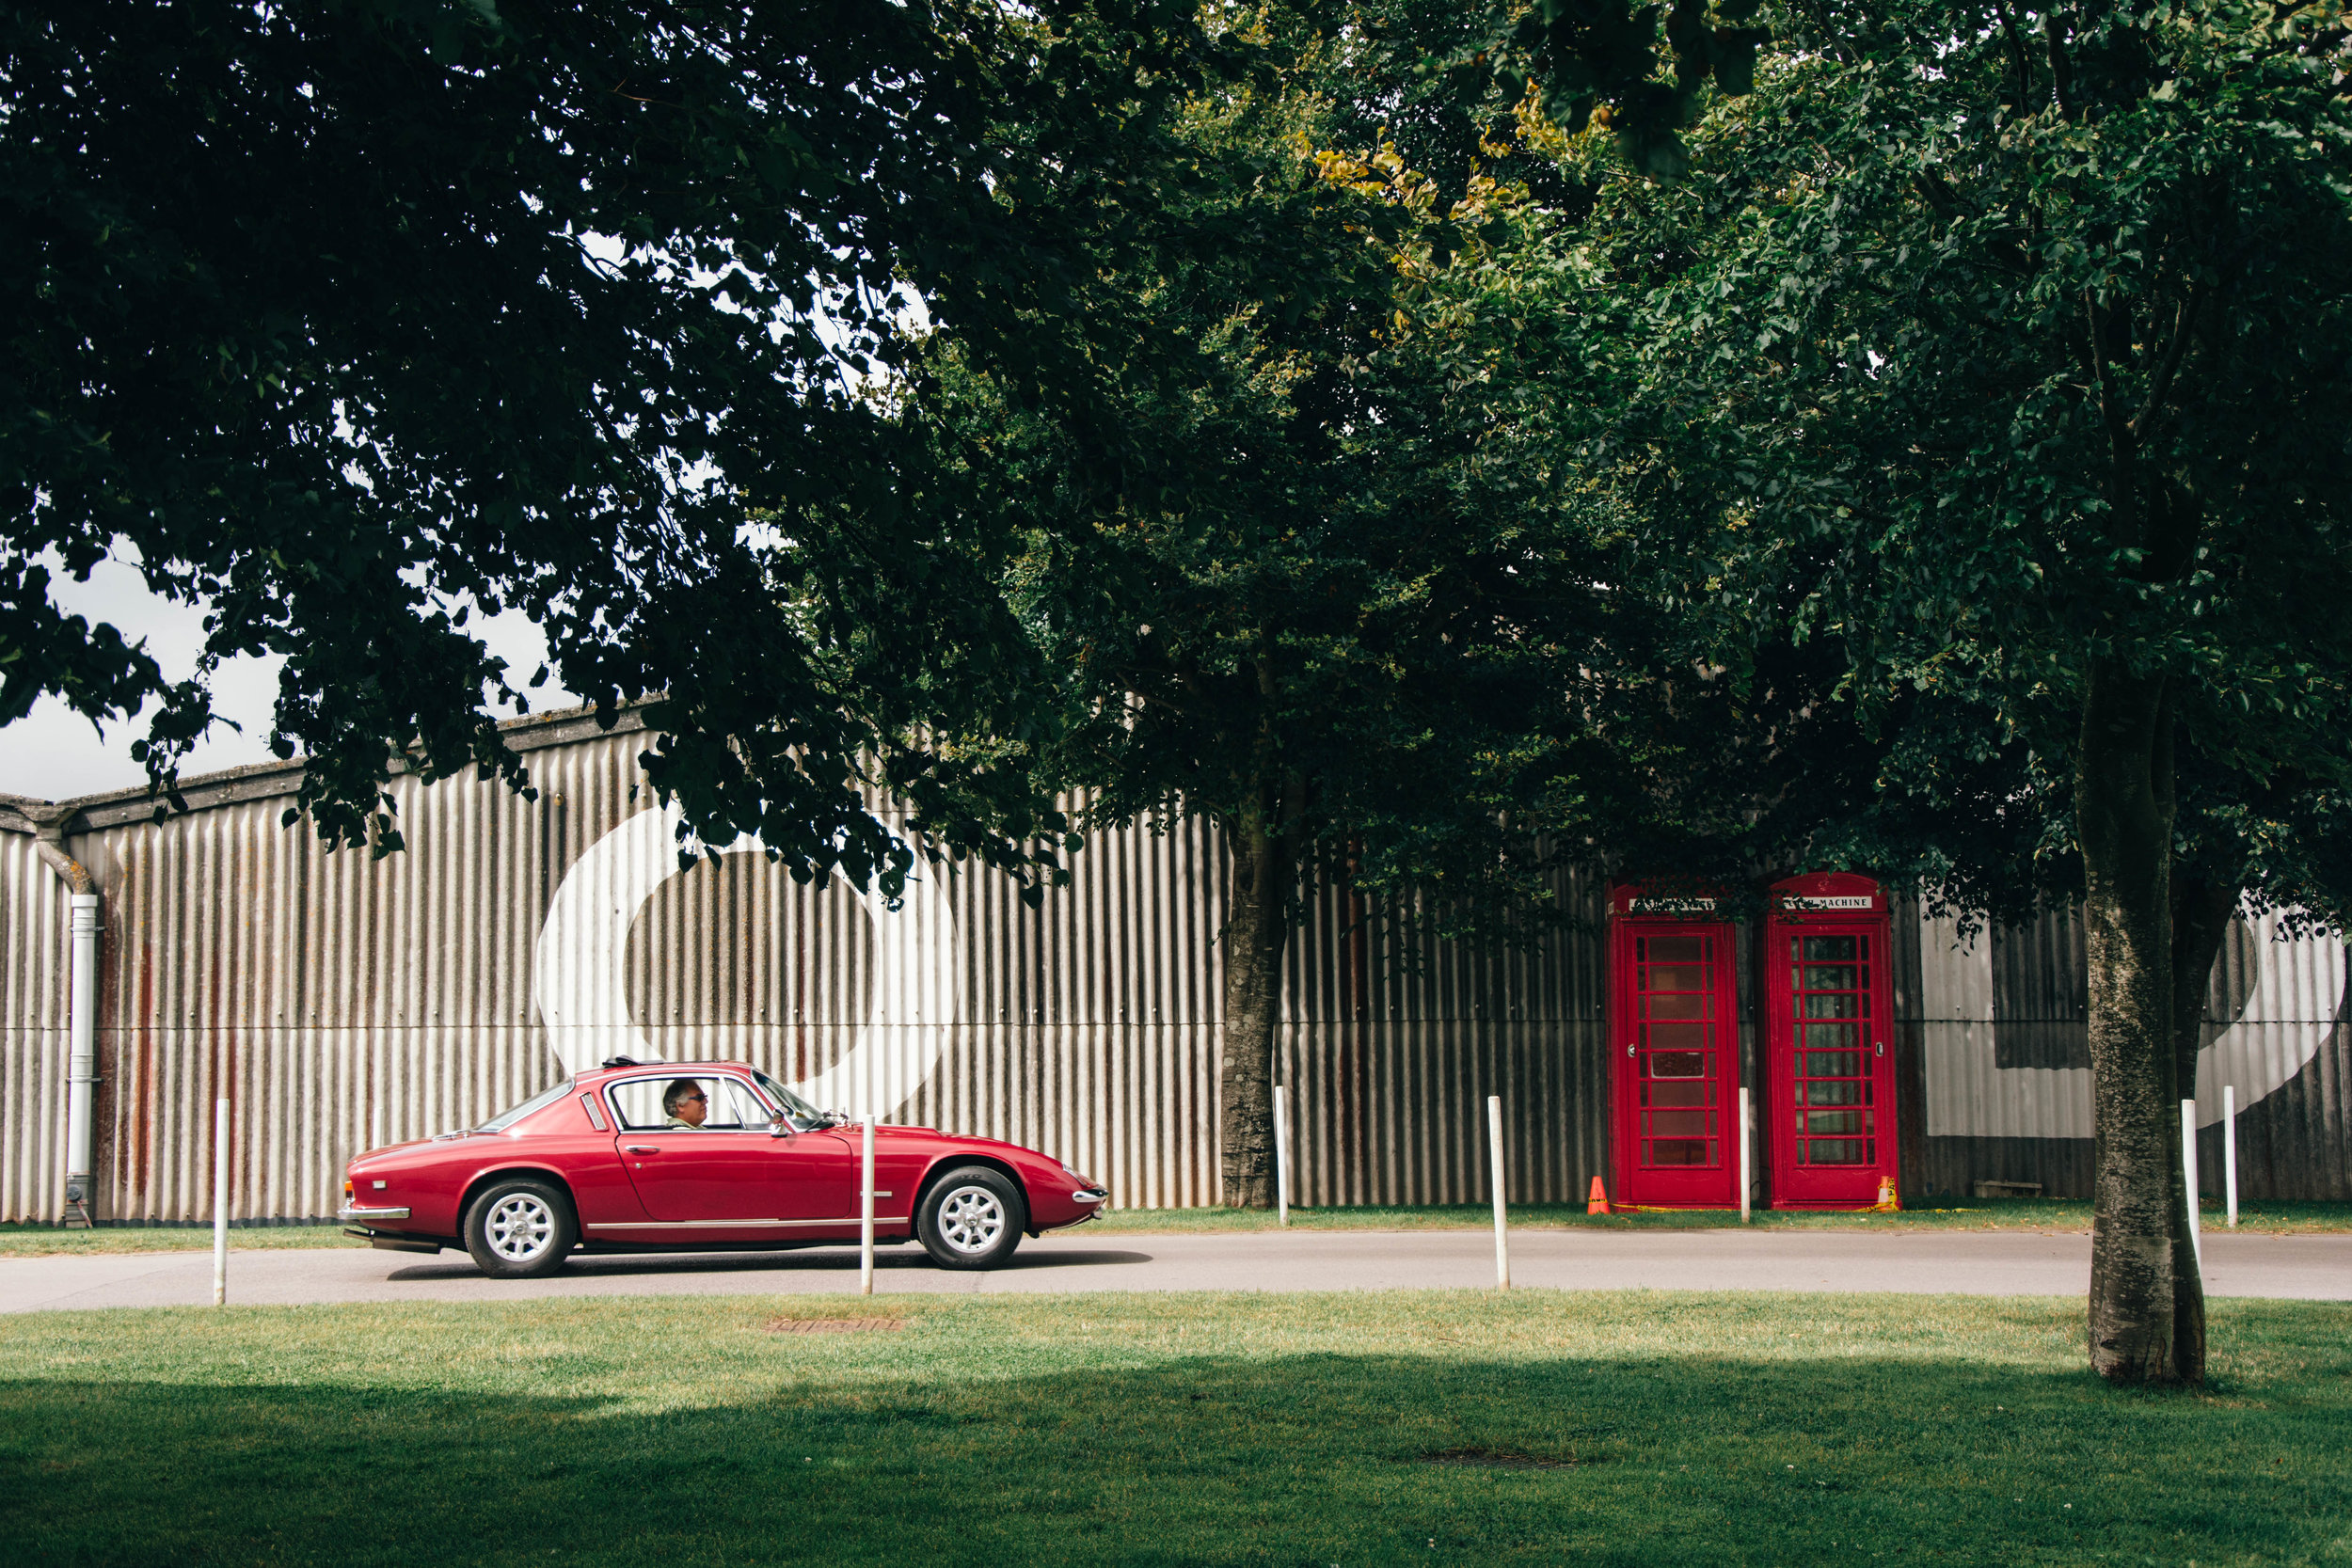 A Goodwood member leaves the Breakfast Club meeting in his classic sports car.